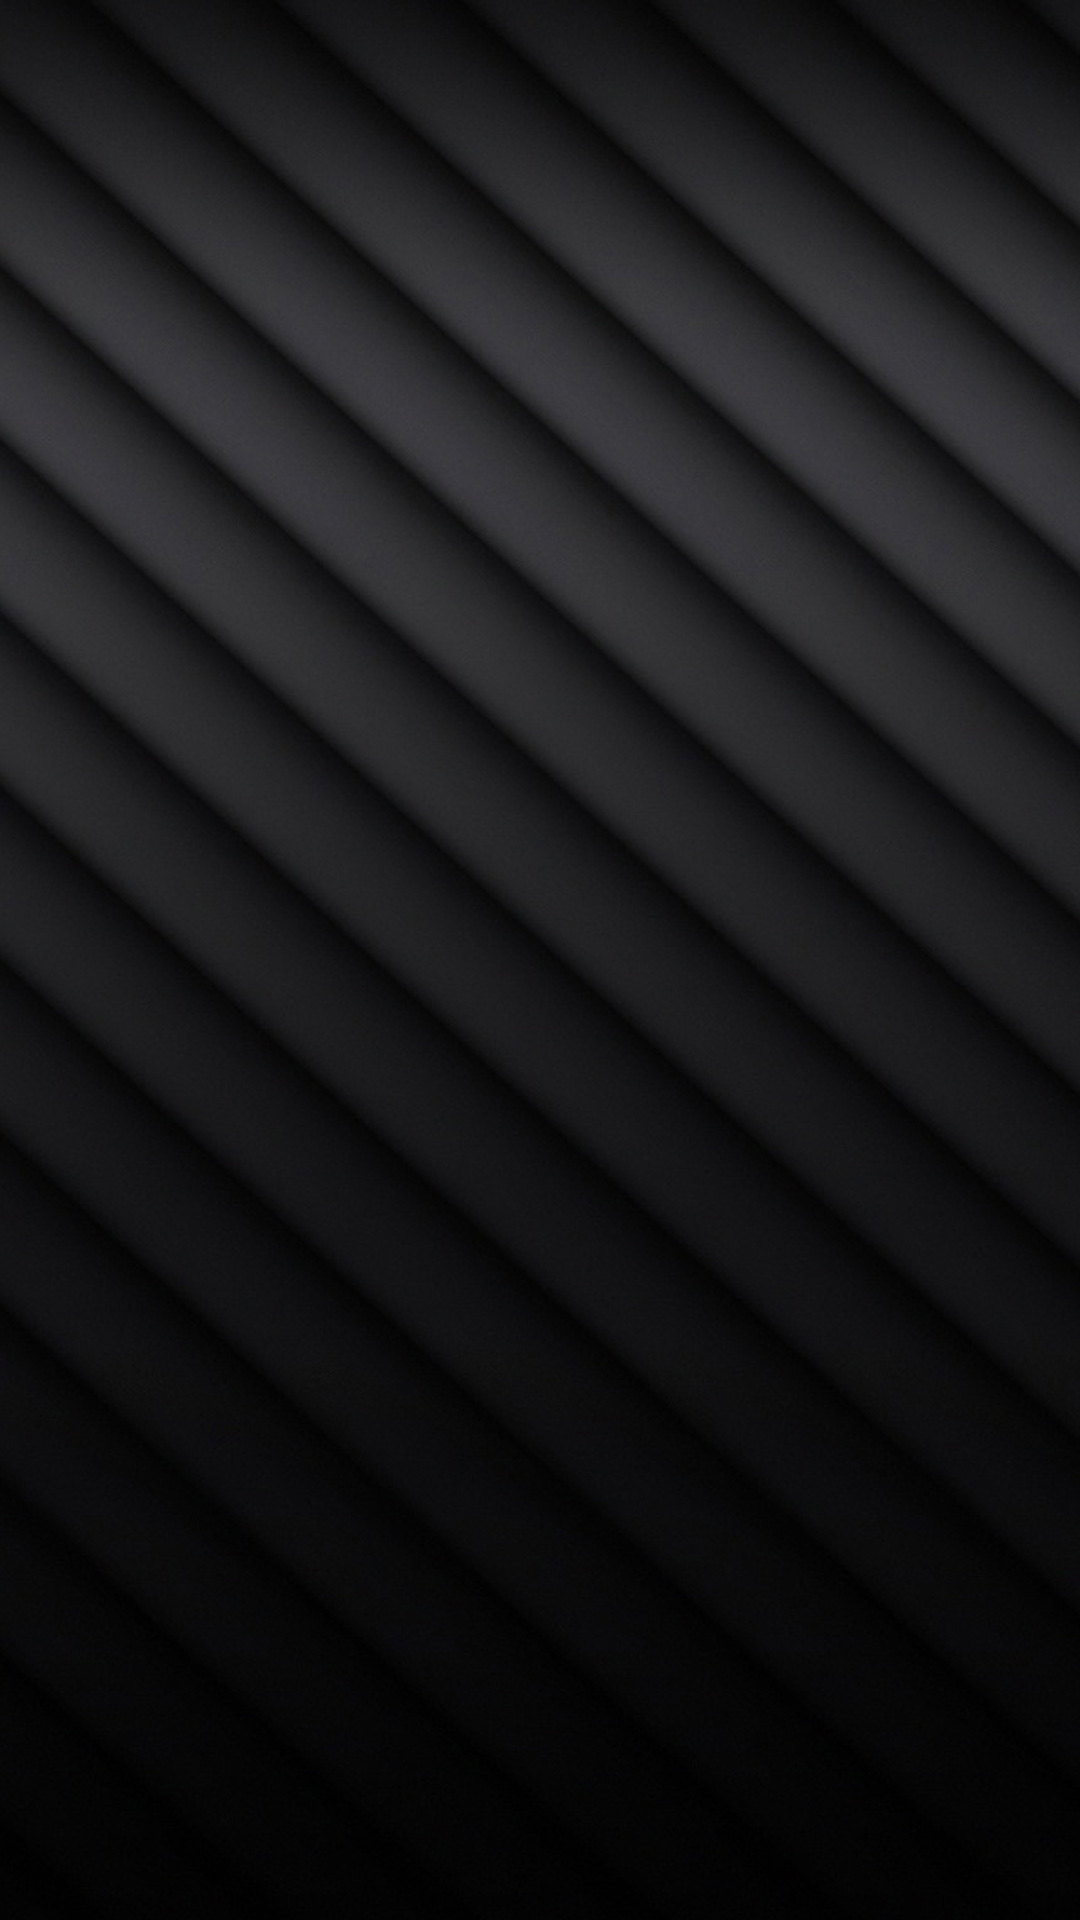 Abstract-Black-Stripes-Note-Samsung-Galaxy-Note-wallpaper-wp5803268-1